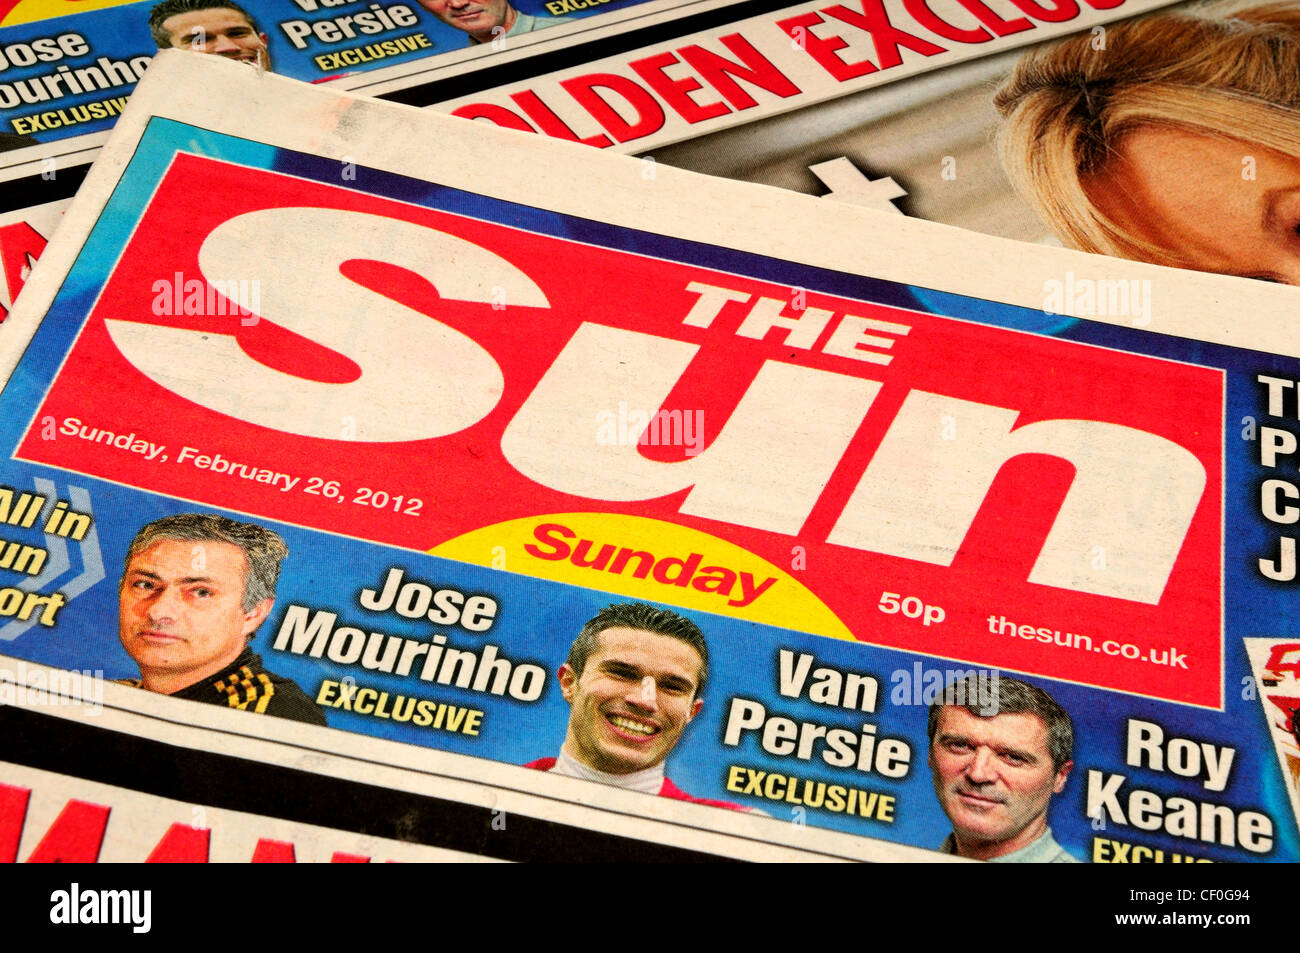 The Sun on Sunday ,First Edition of News Internationals Paper.26.02.2012. - Stock Image